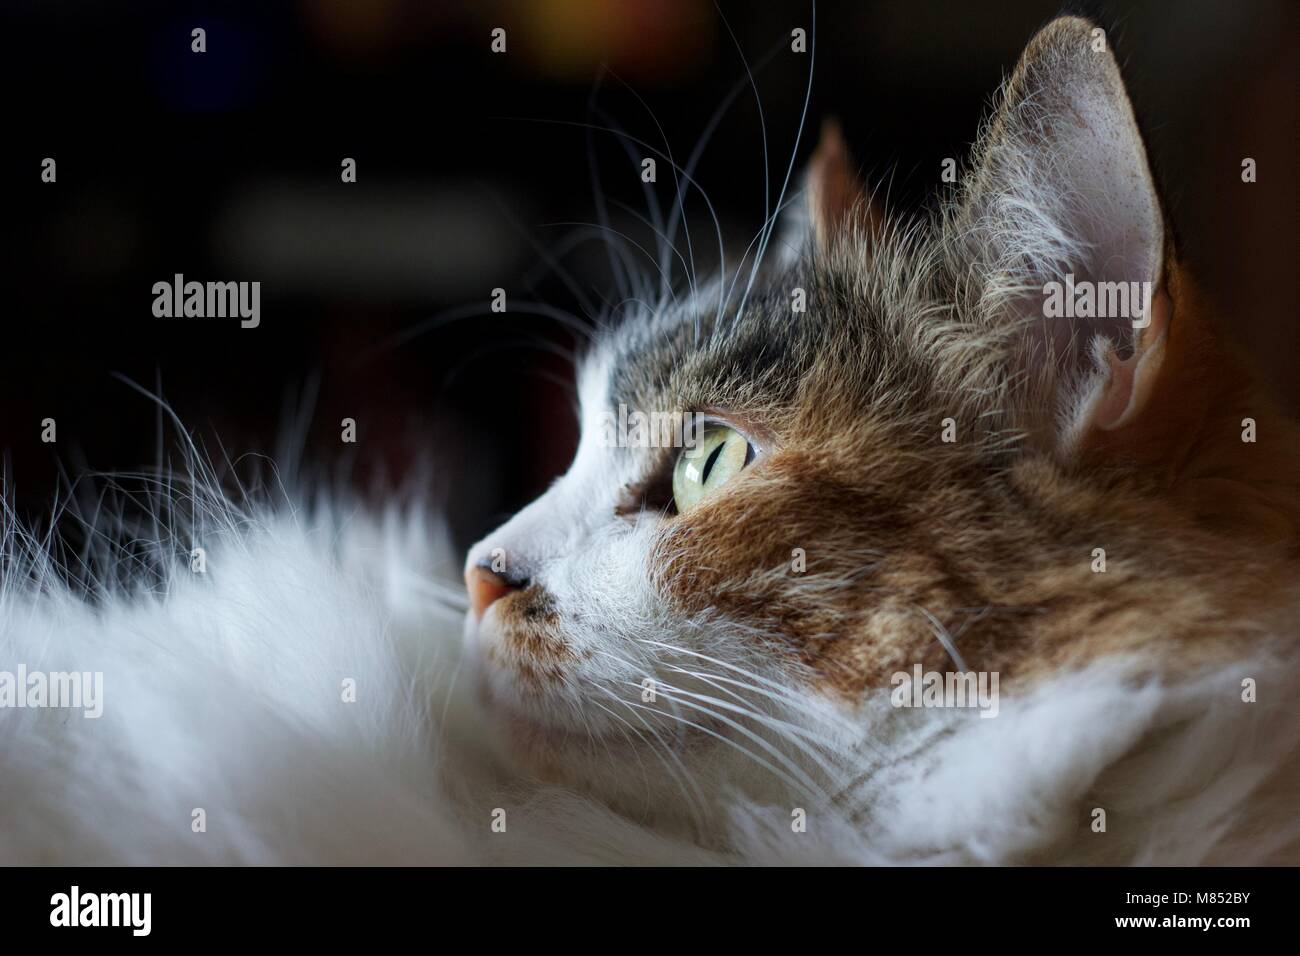 Cat looking out window into the light. - Stock Image